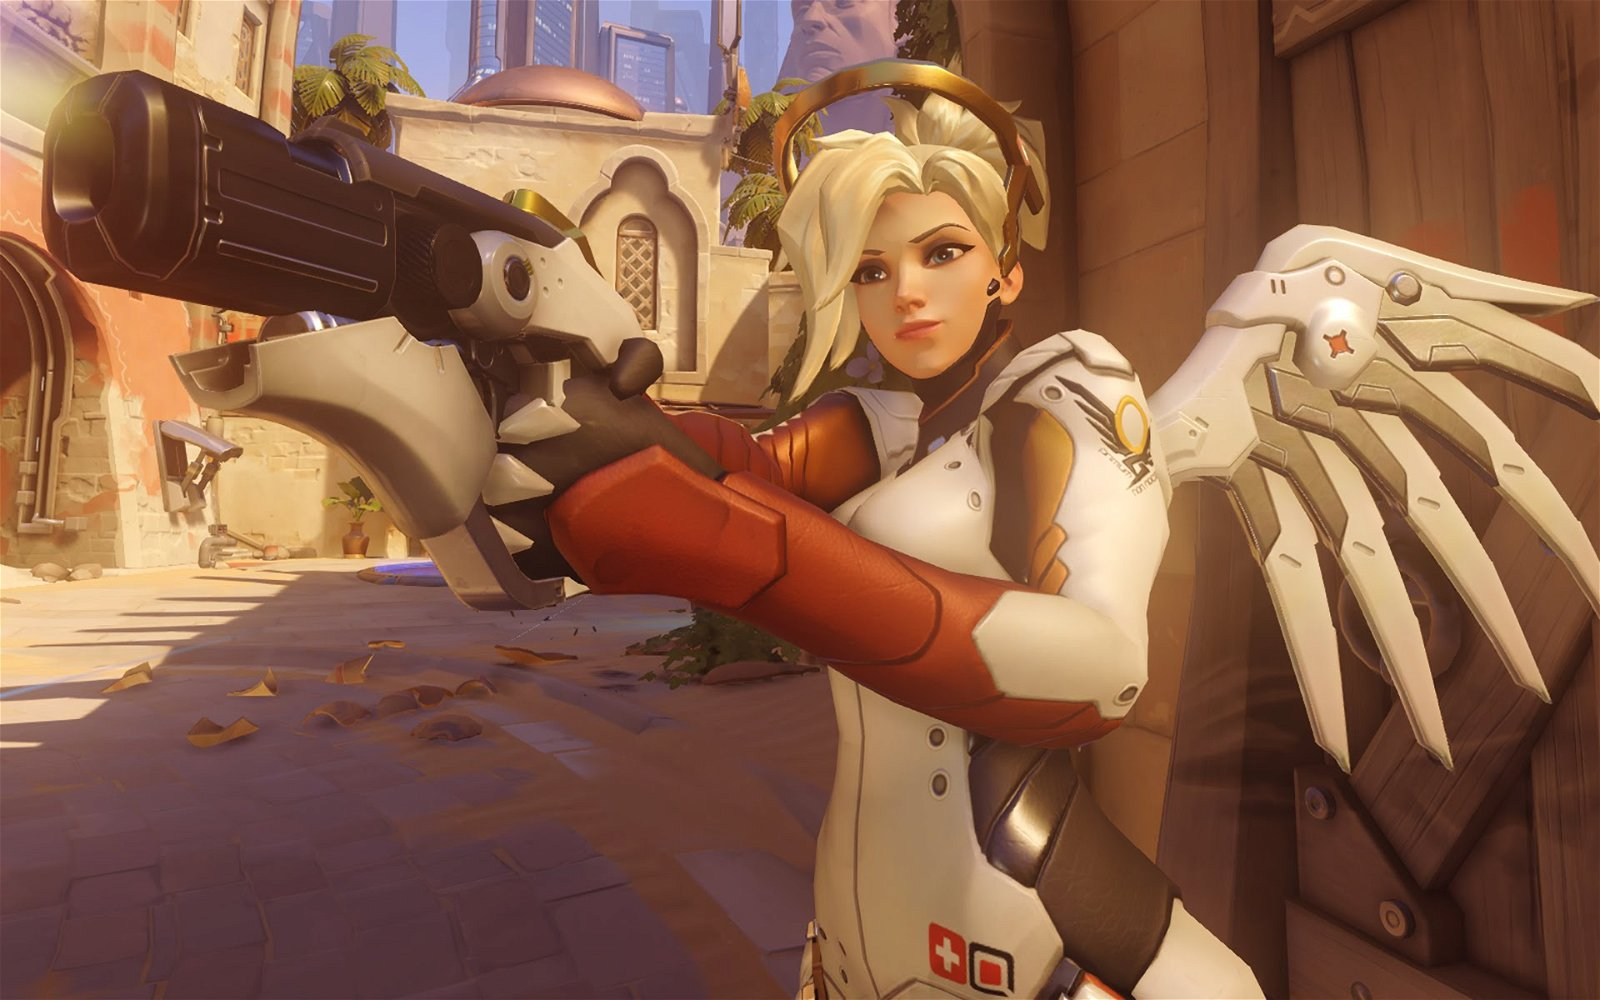 Overwatch Competitive Mode Confirmed for July Release